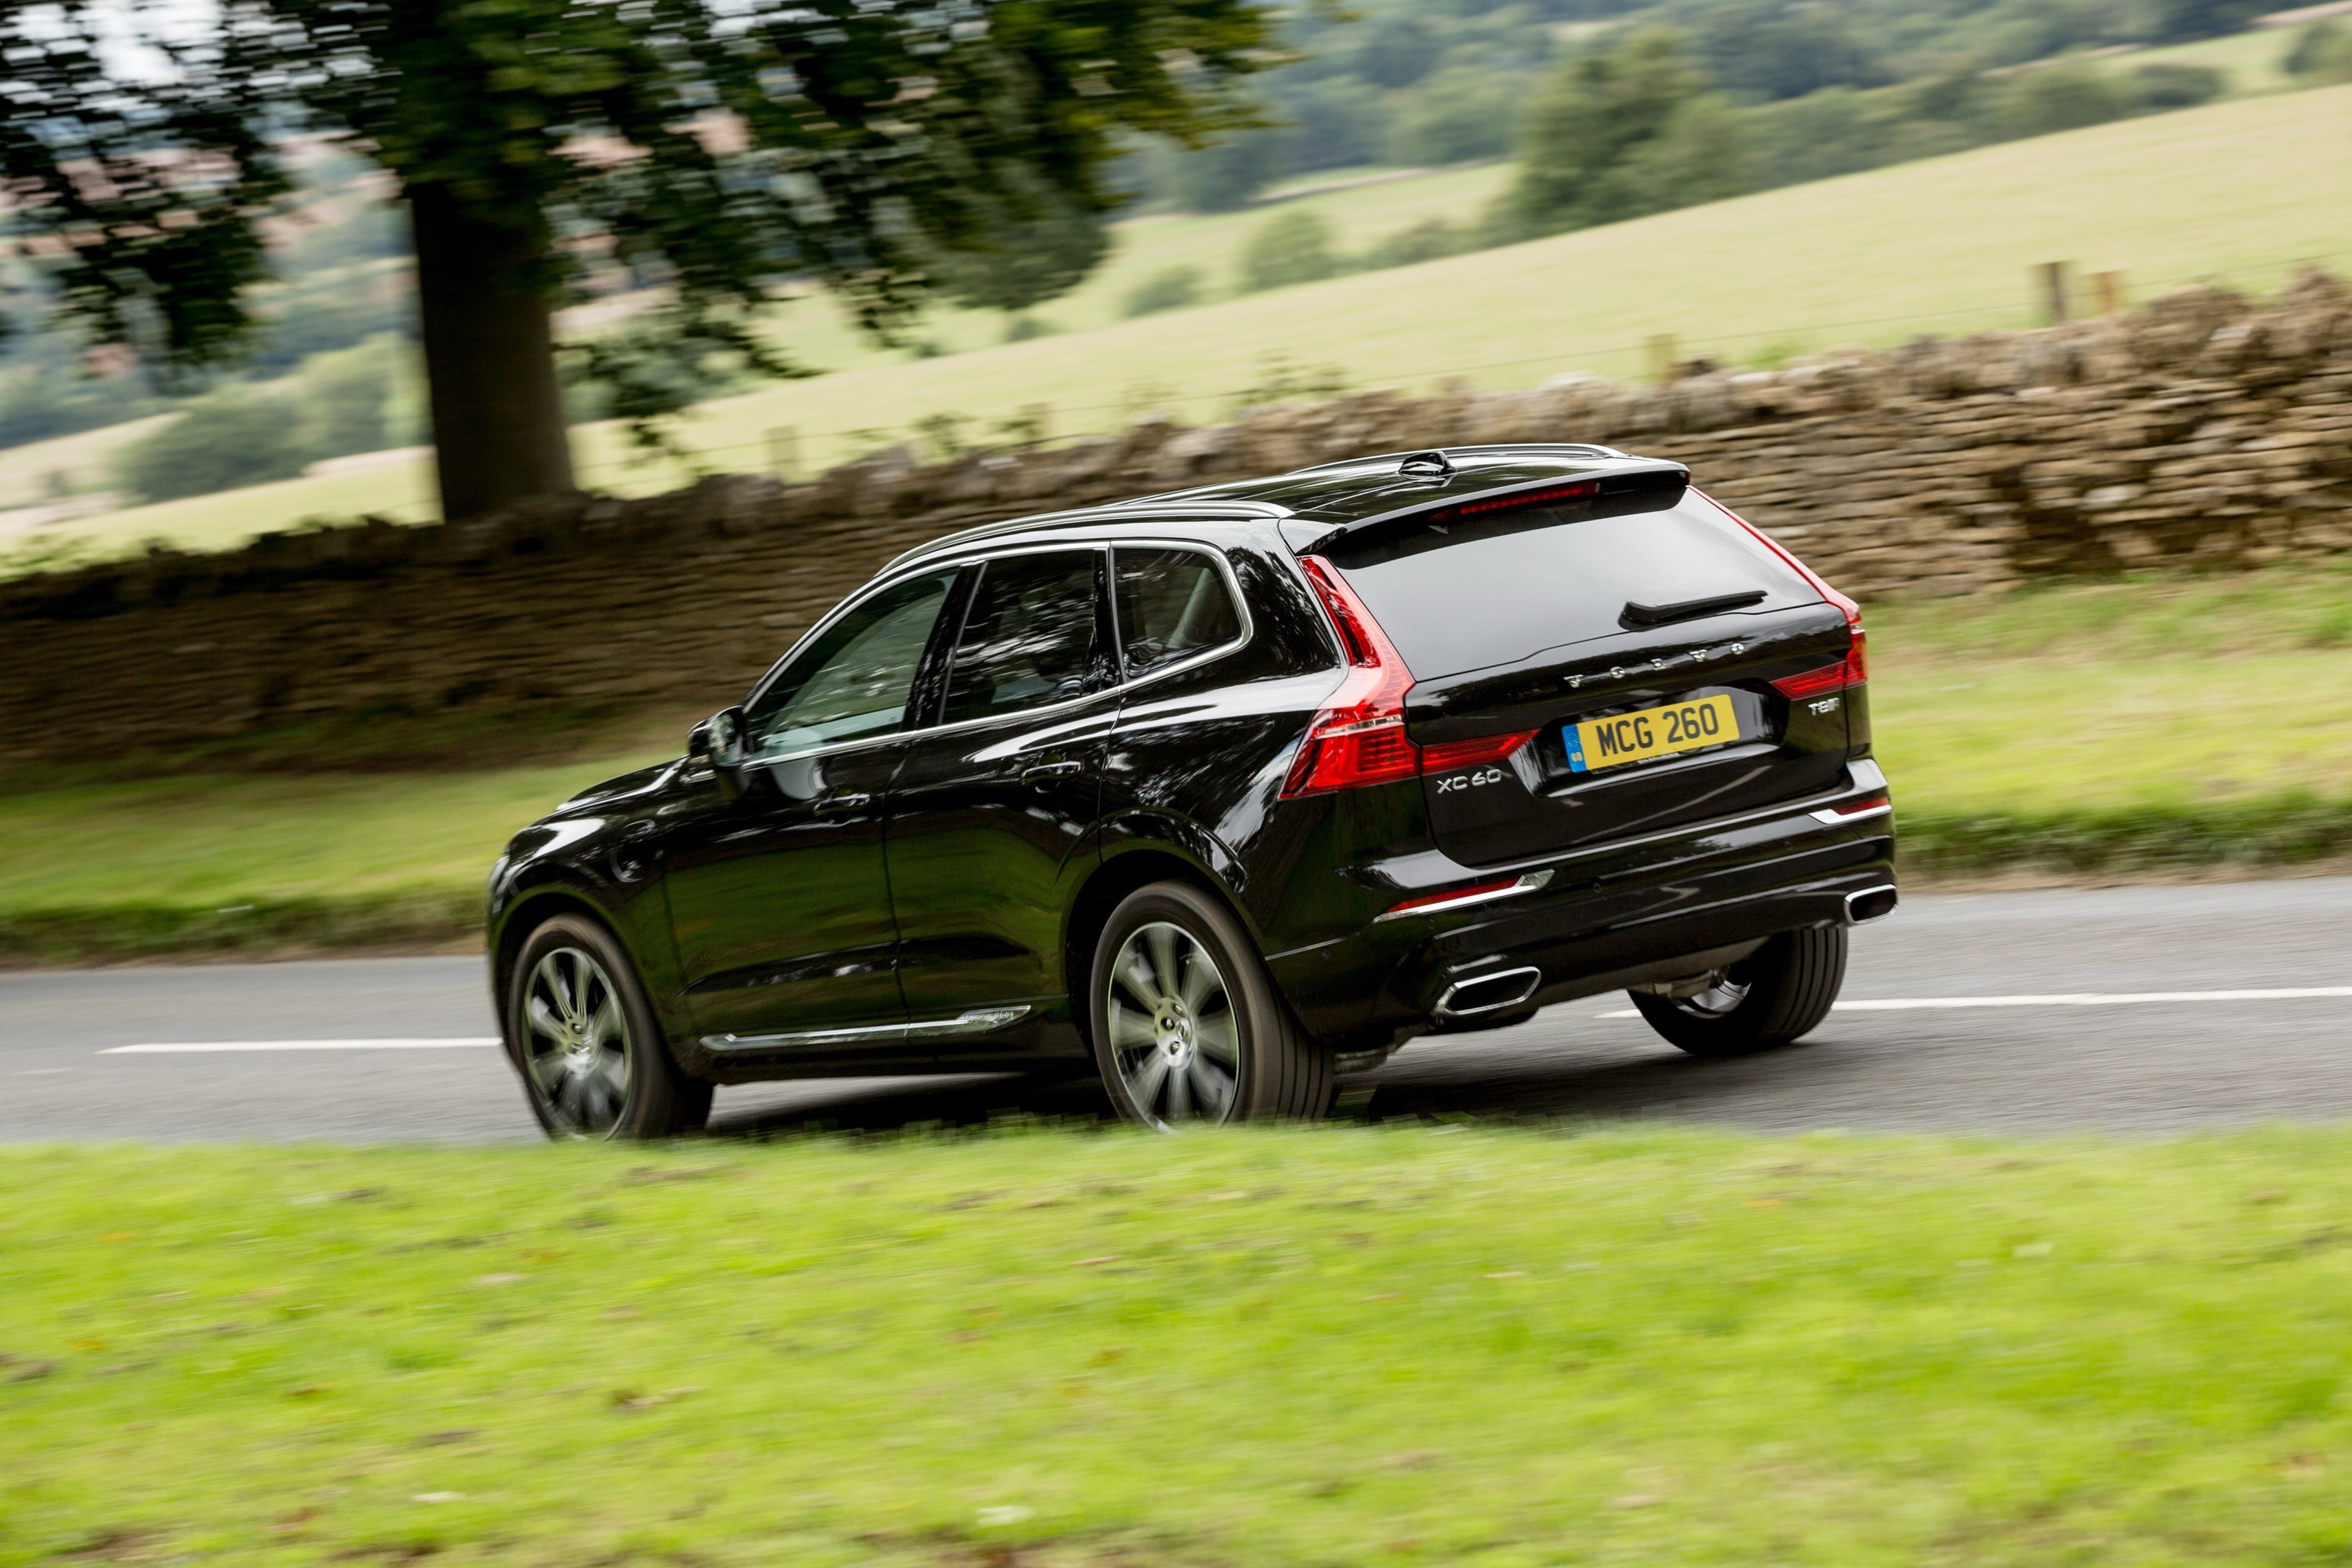 Side view of Black Volvo XC60 T8